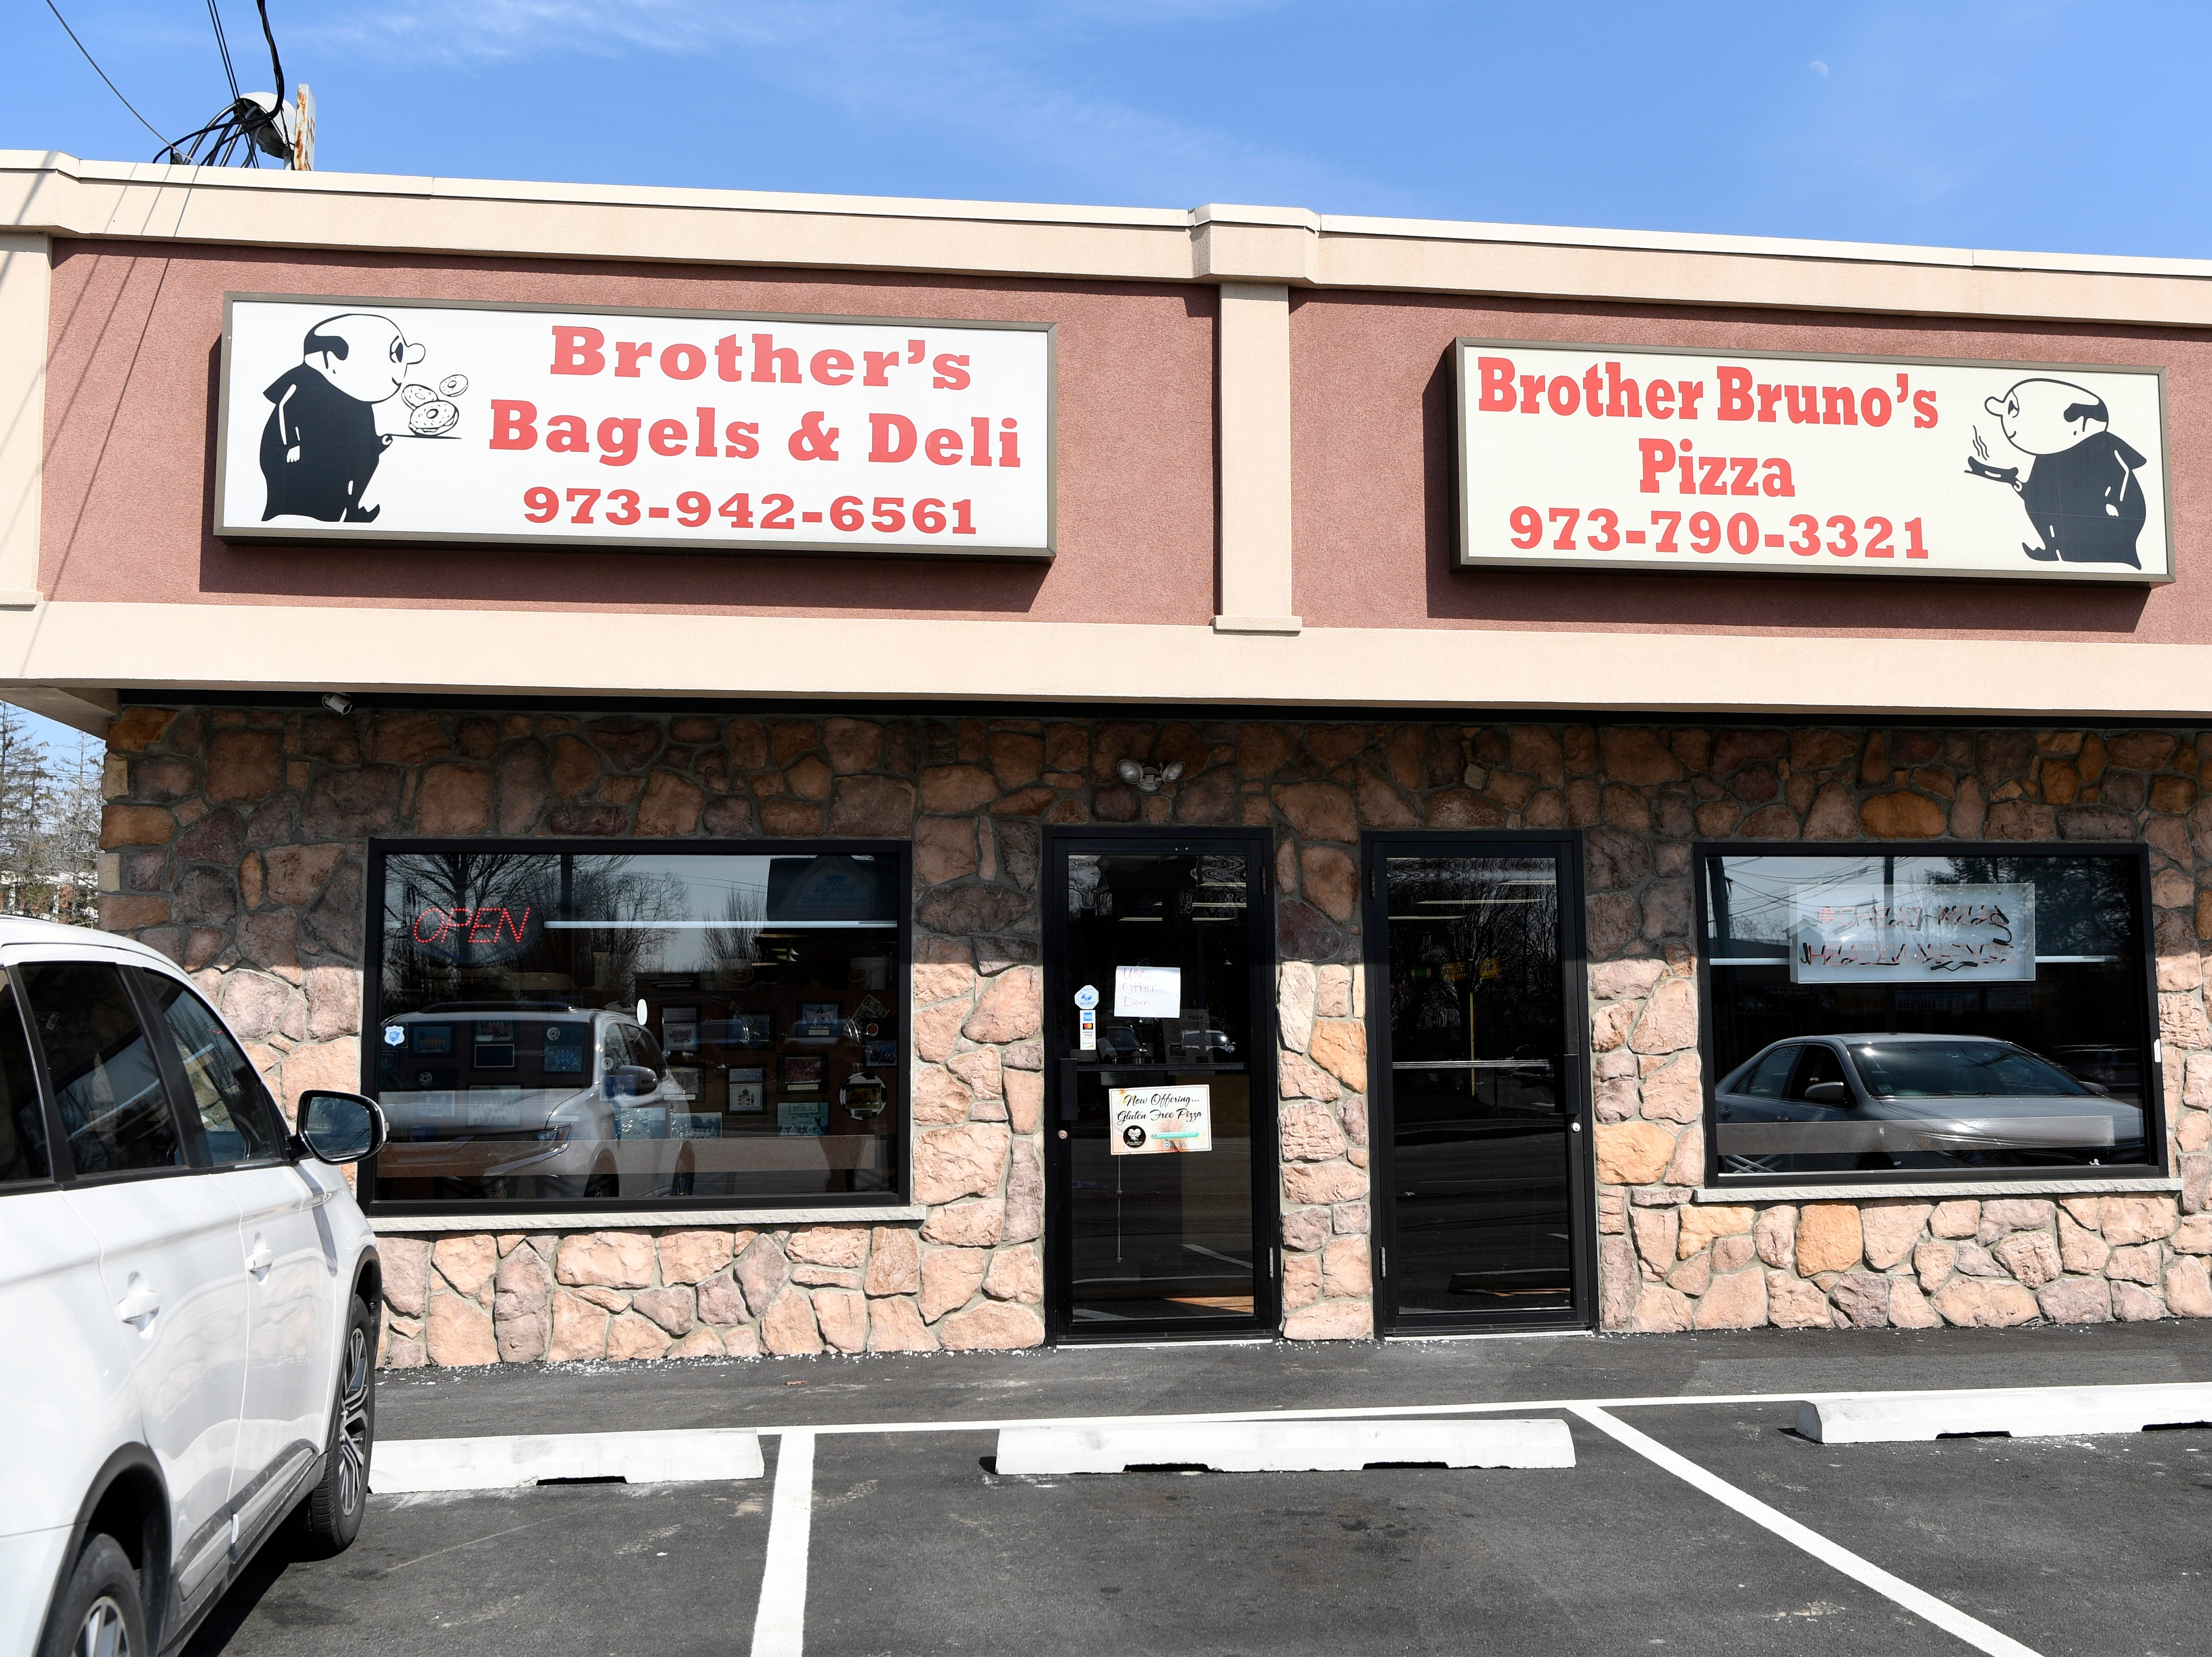 Brother Bruno's Pizza in Wayne. Photographed on Thursday, March 14, 2019.